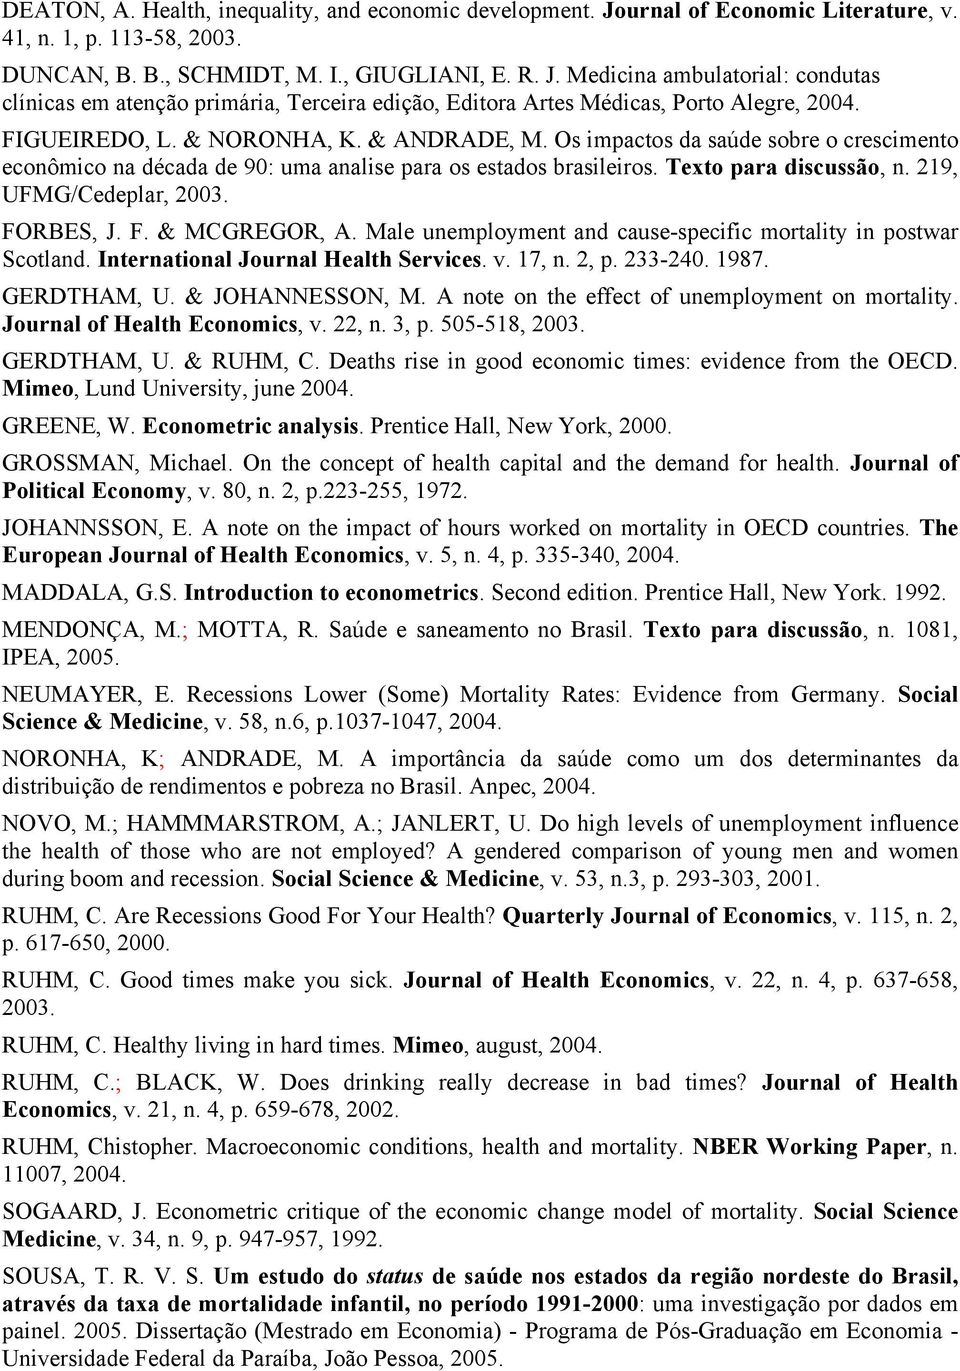 FORBES, J. F. & CGREGOR, A. ale unemployment and cause-specfc mortalty n postwar Scotland. Internatonal Journal ealth Servces. v. 17, n. 2, p. 233-240. 1987. GERDTA, U. & JOANNESSON,.